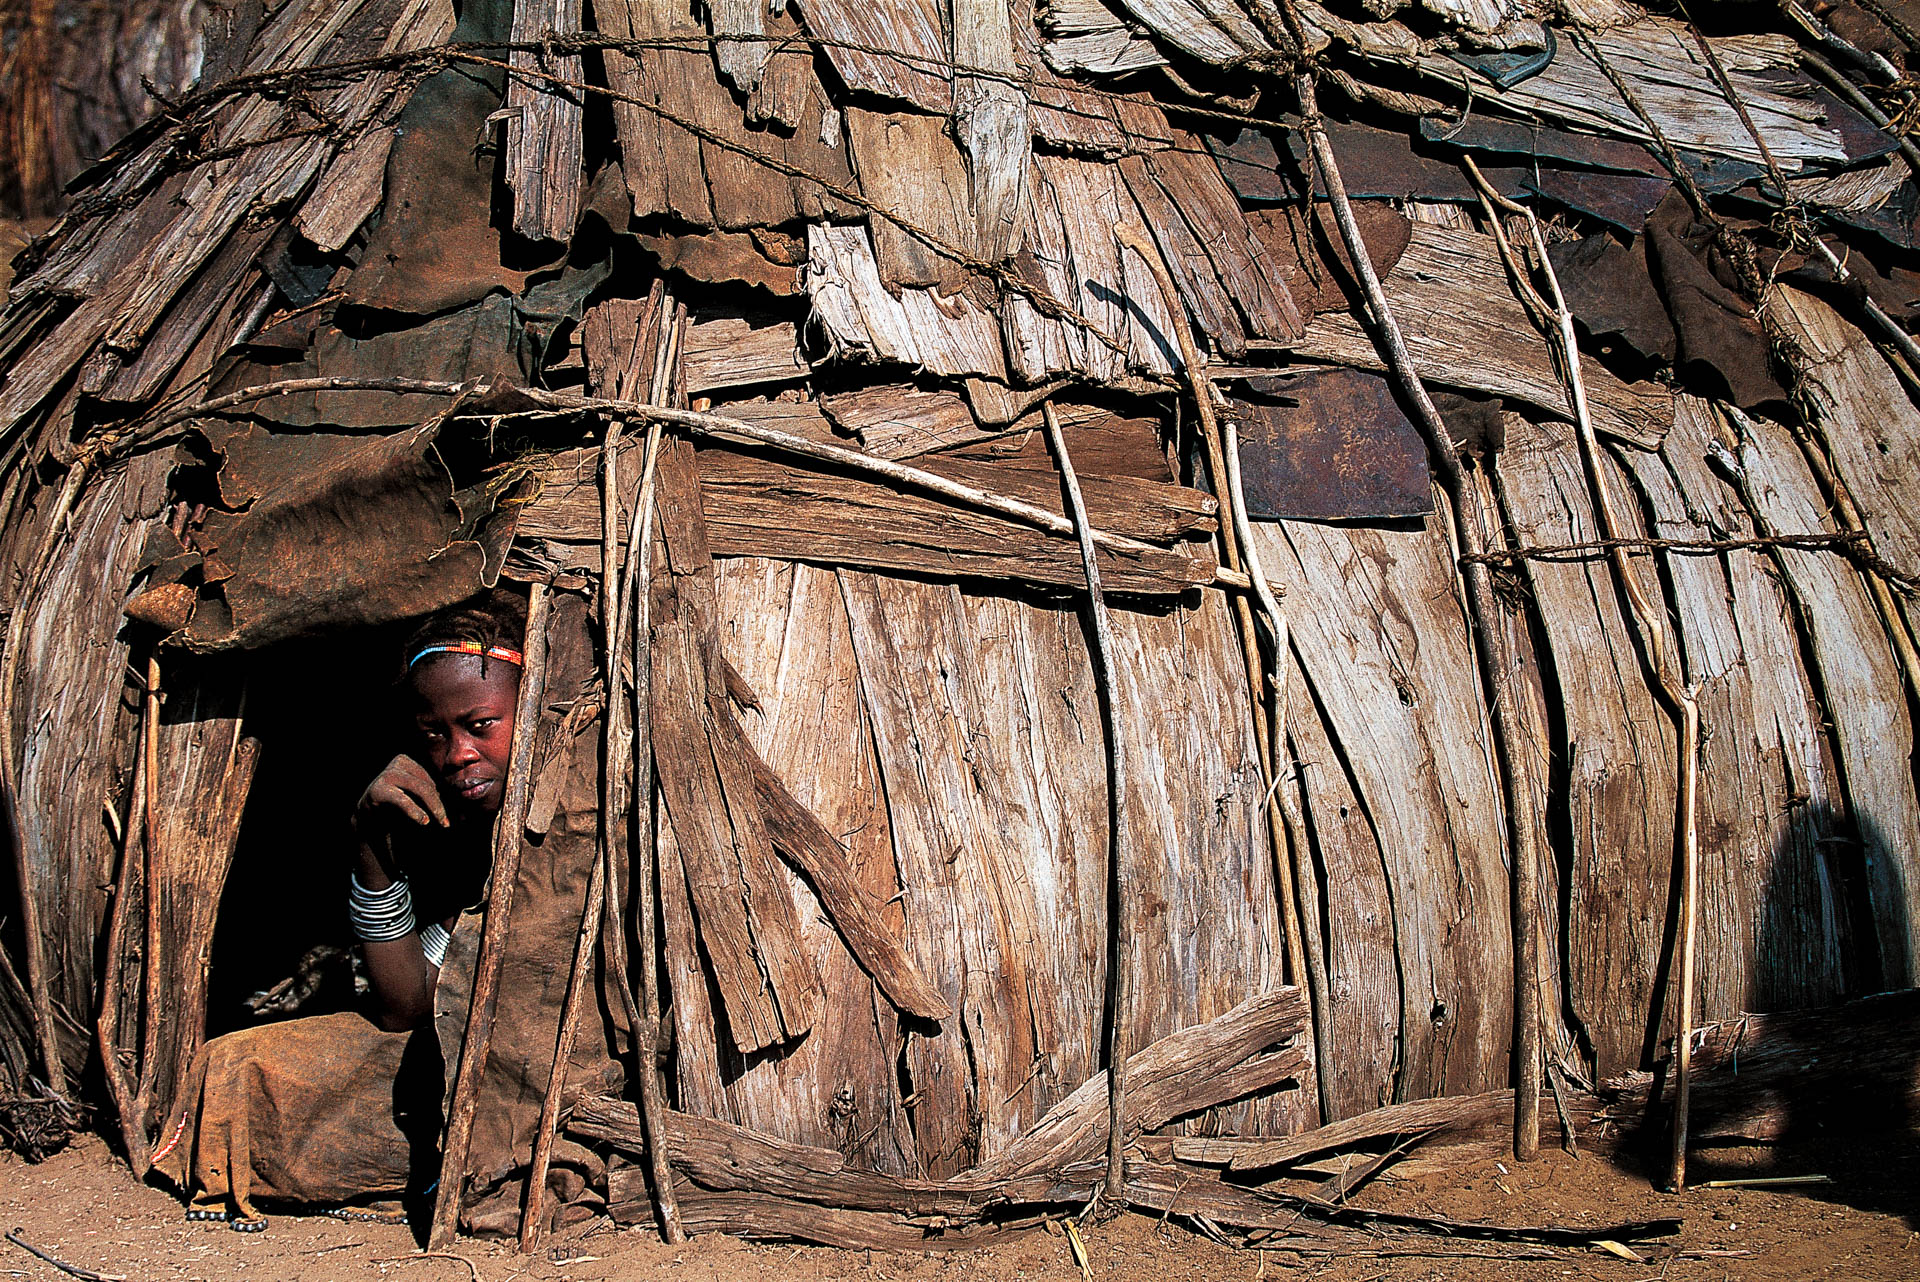 At Rate the children find shade in the huts.